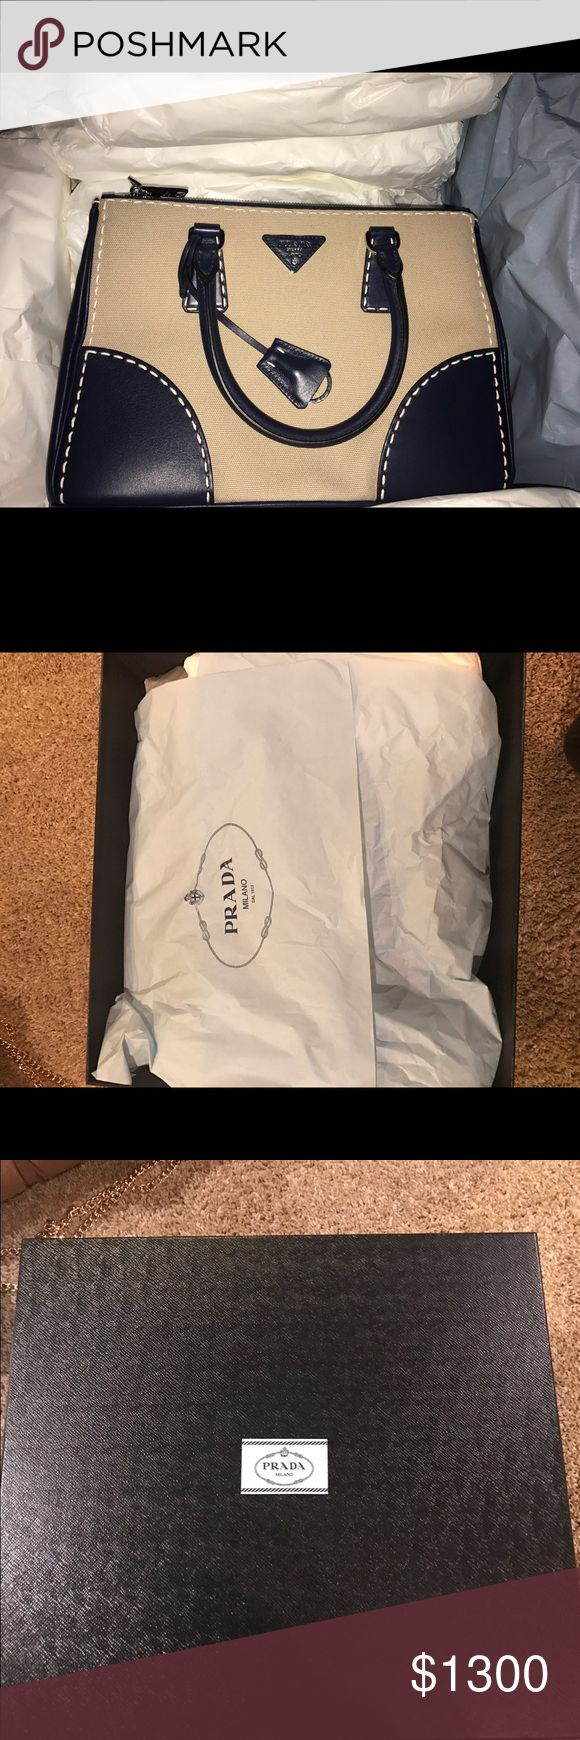 2016 brand new Prada Purse,  with receipt Never been used, bought in December 2016 from Prada, in original box and packaging and has long strap, and store receipt Prada Bags Shoulder Bags